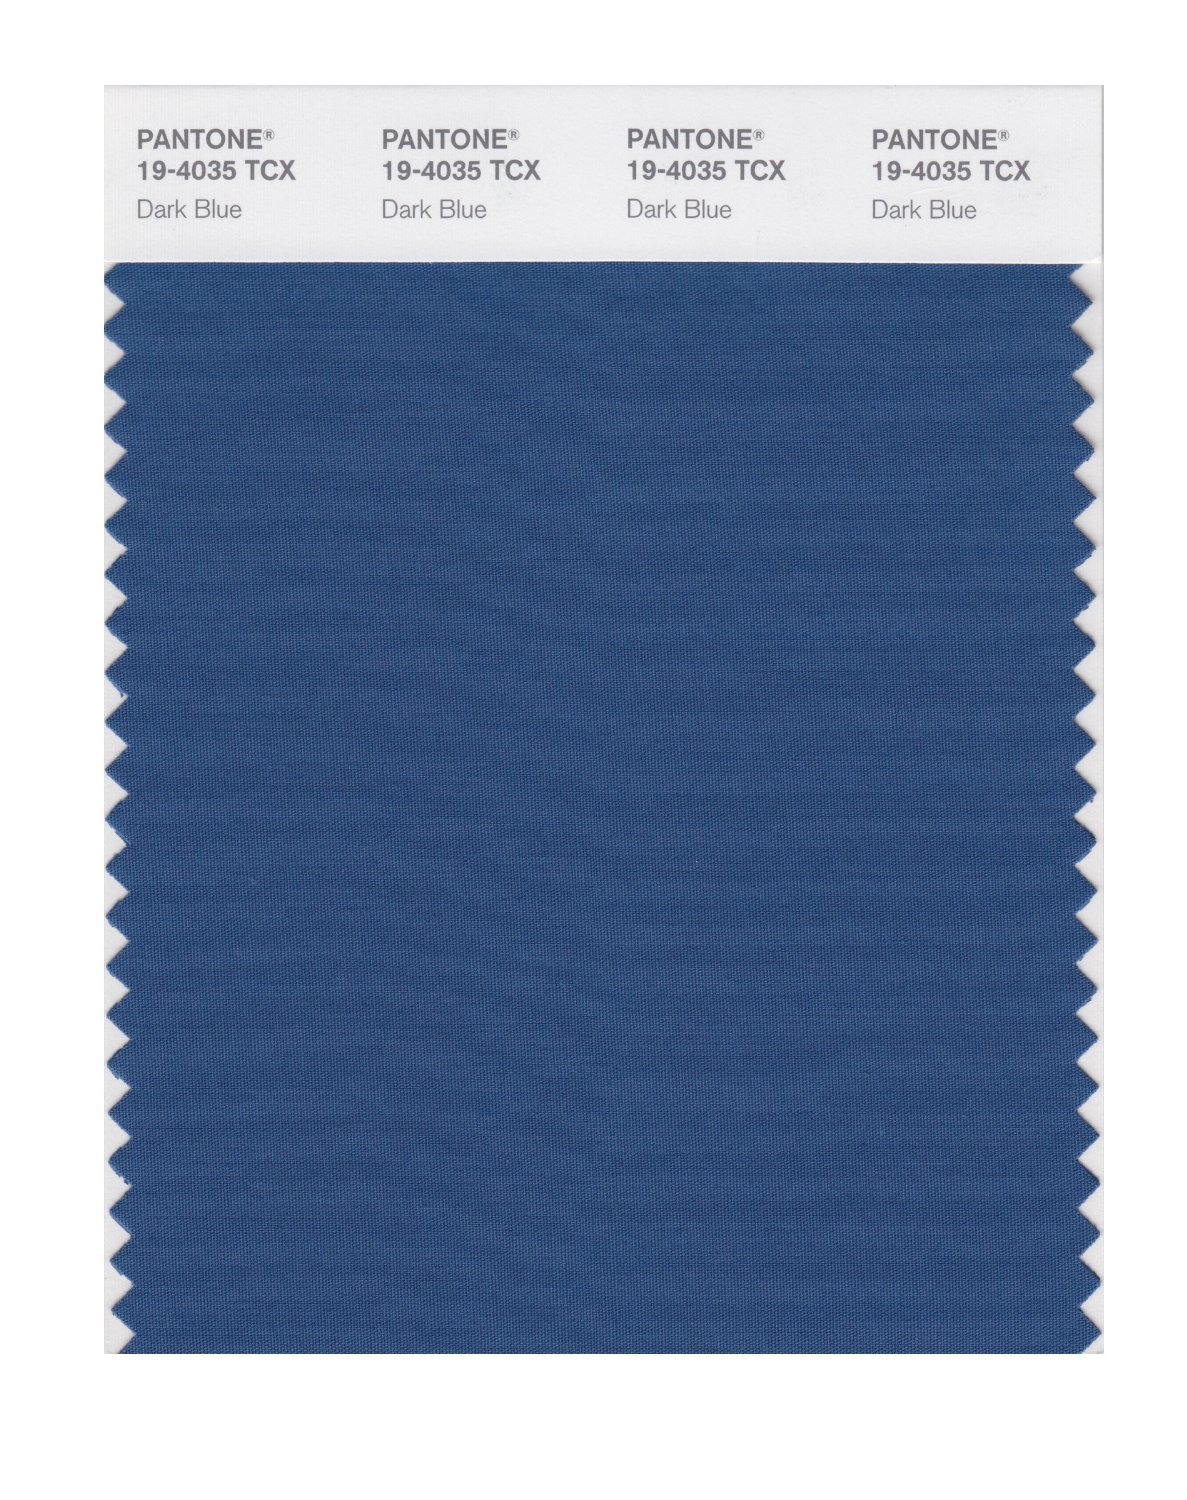 Pantone Smart Swatch 19-4035 Dark Blue